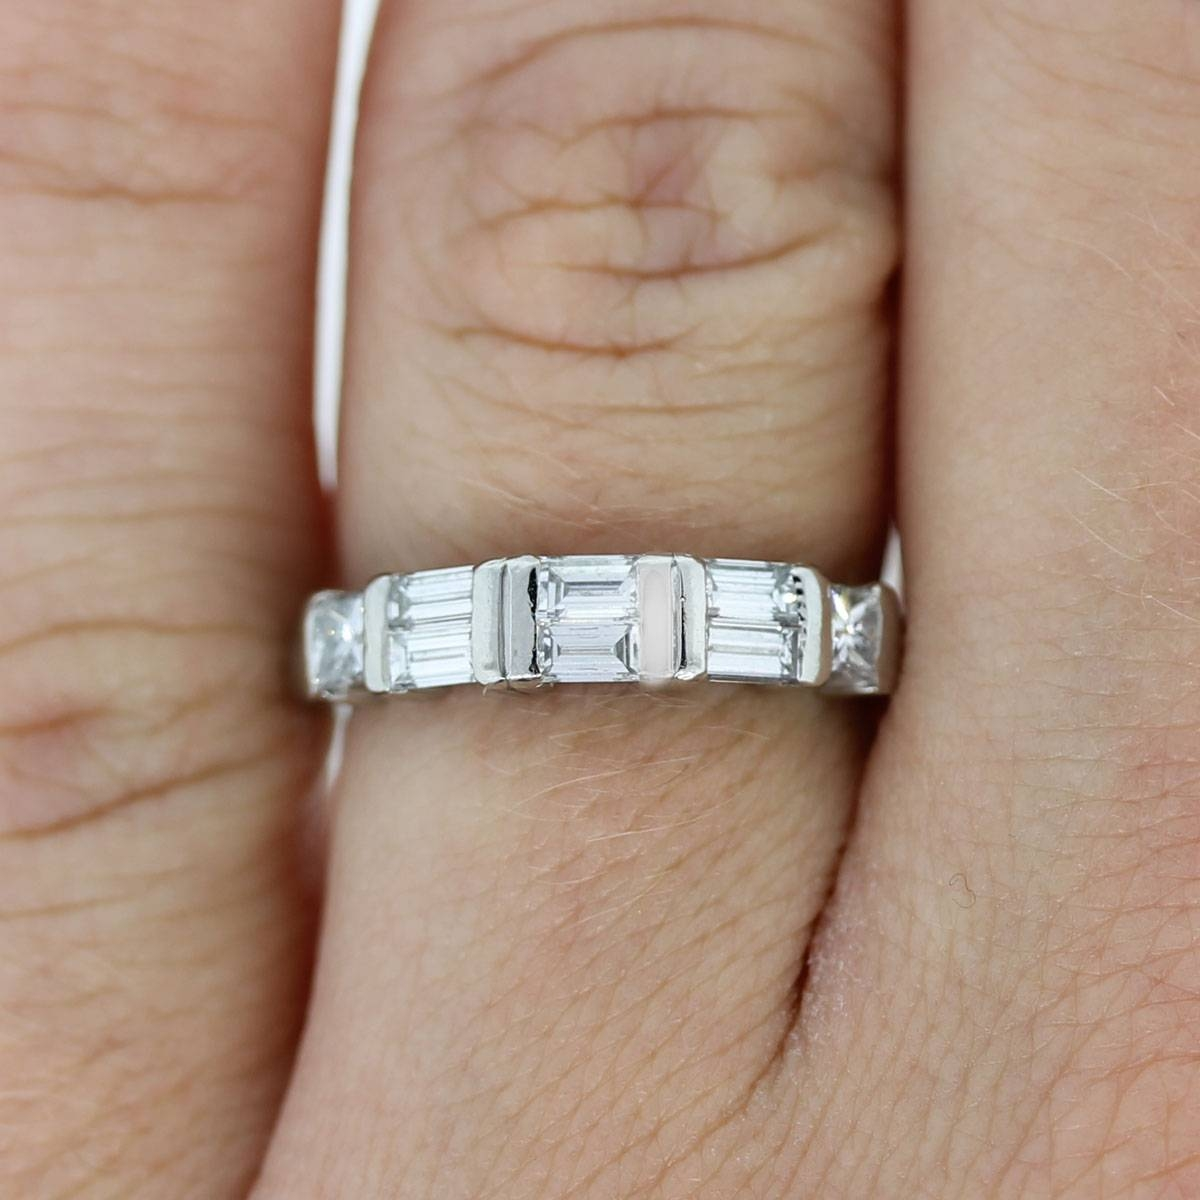 Wedding Rings : Baguette Wedding Band Rings Big Engagement Rings With Regard To Baguette Wedding Bands (View 12 of 15)